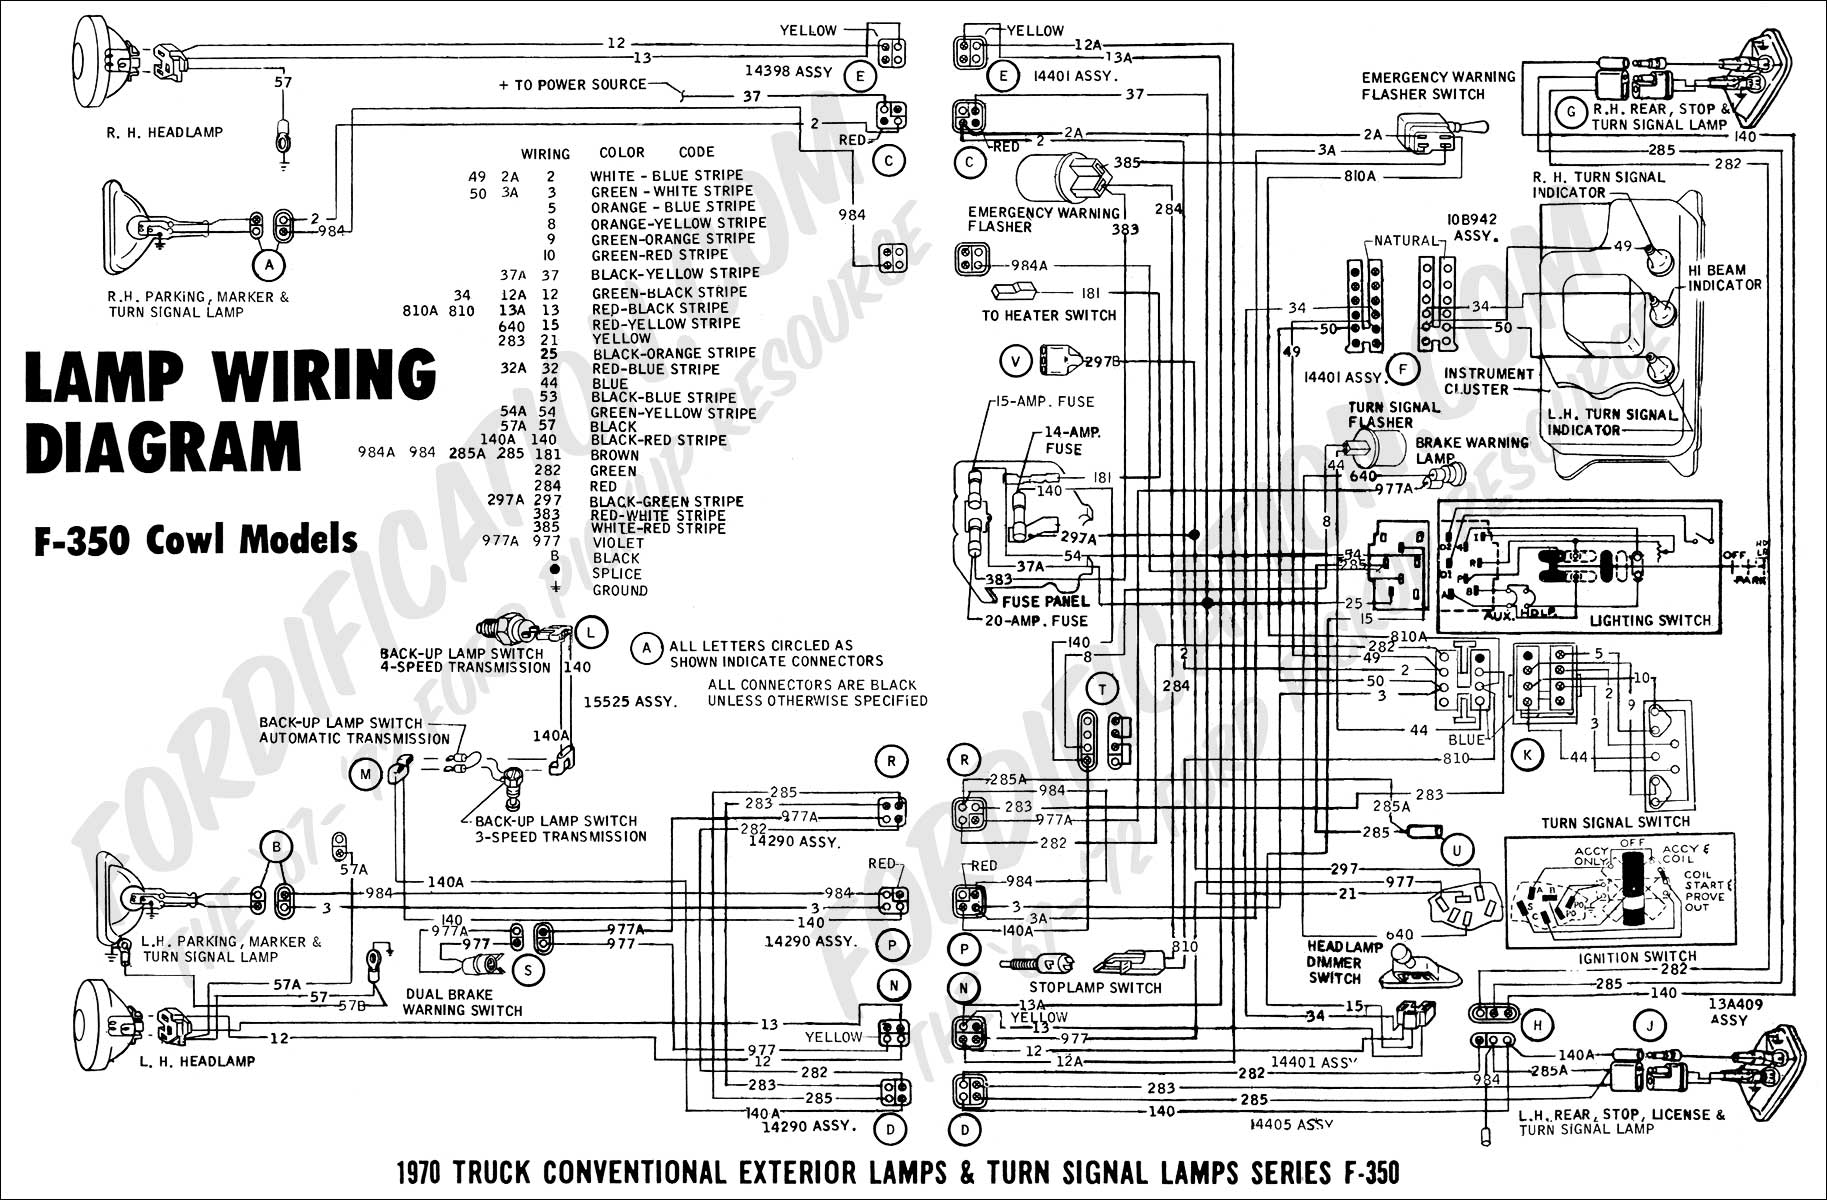 02 e 350 wiring diagram schematics wiring diagrams u2022 rh hokispokisrecords com